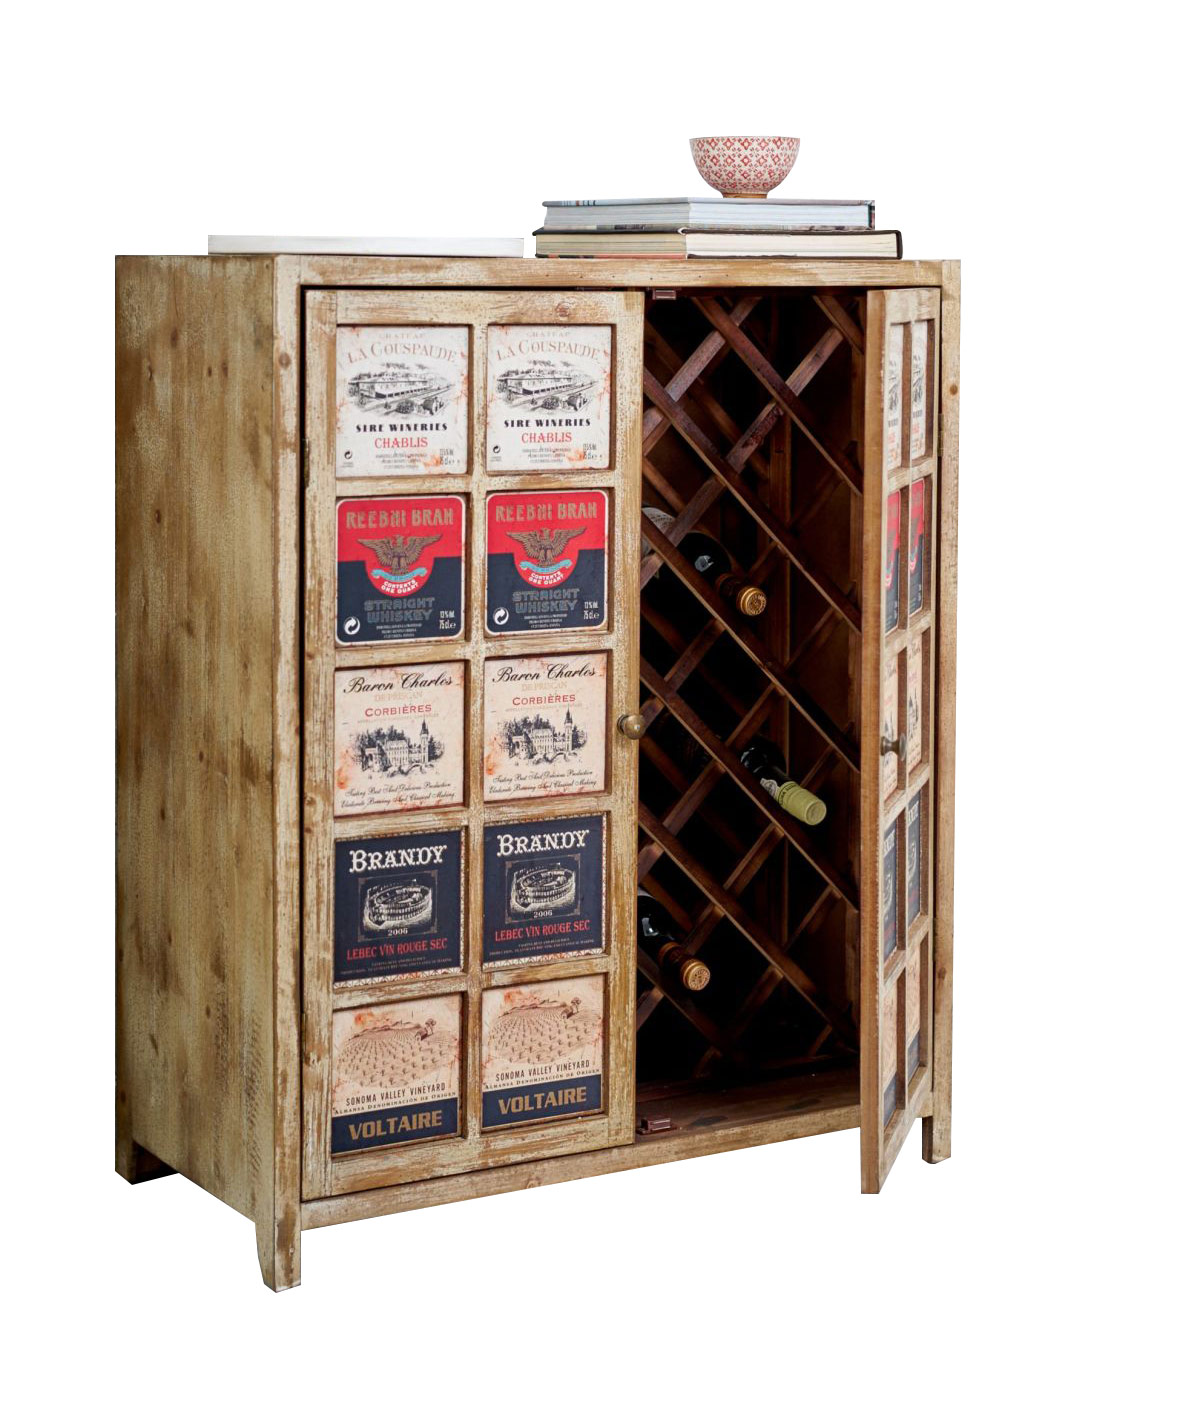 weinschrank kommode im used look von miavilla. Black Bedroom Furniture Sets. Home Design Ideas